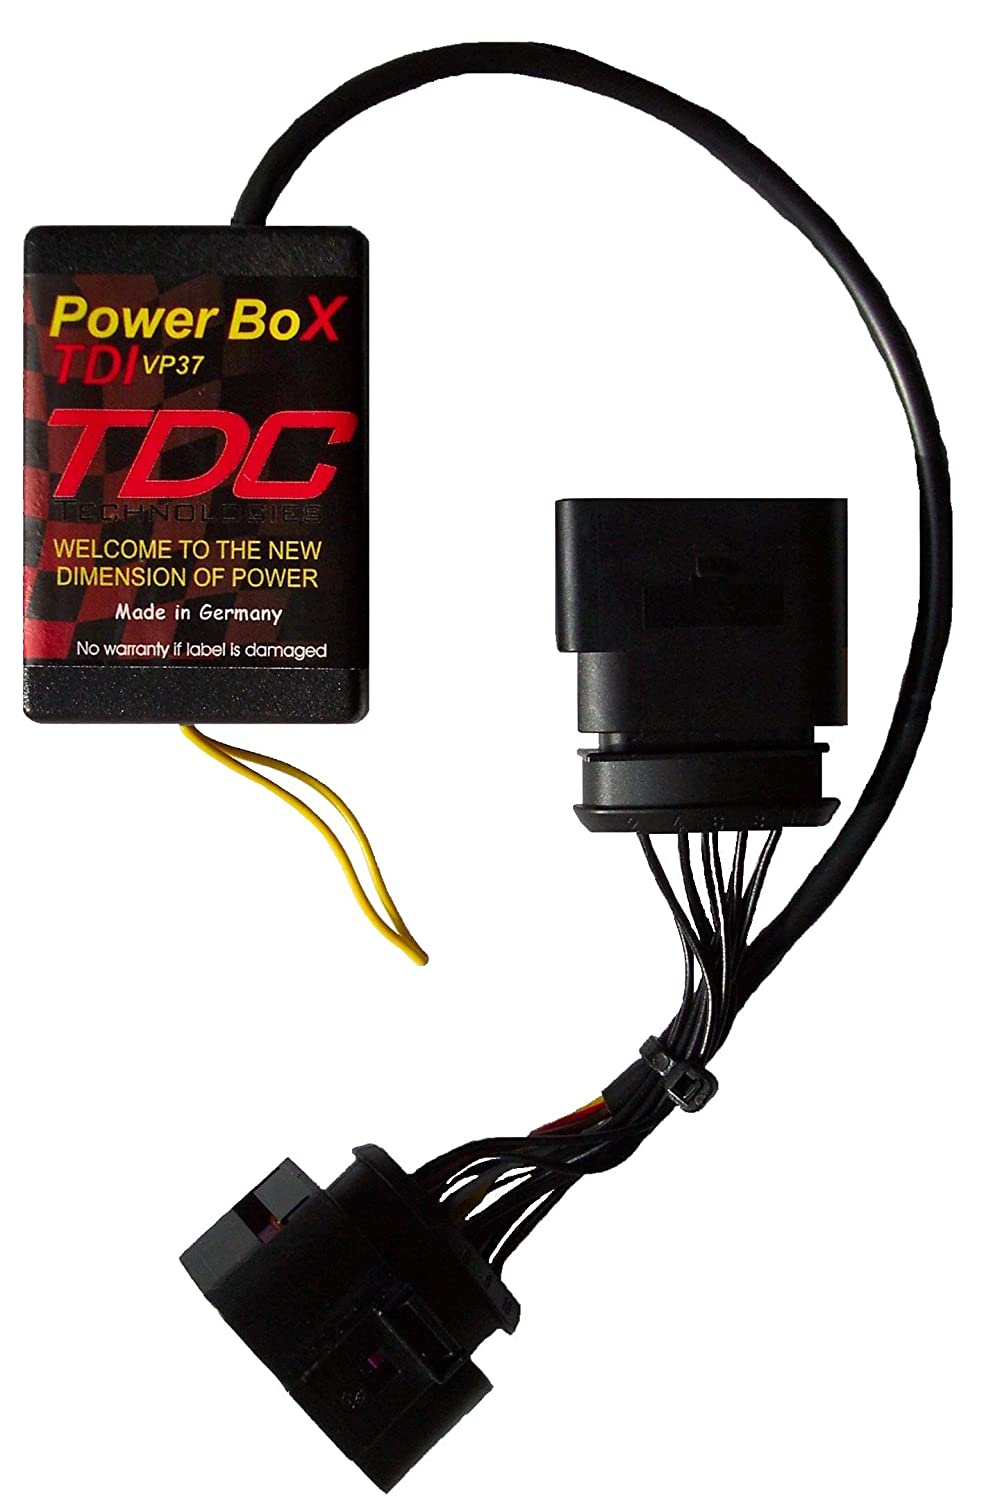 PowerBox VP37 Diesel Chiptuning Performance Module Tuningchip for VW Volkswagen Jetta 1.9 TDI (year 1996-2003) 66 KW / 90 PS / 285 NM - more power less fuel MAL Electronics GmbH